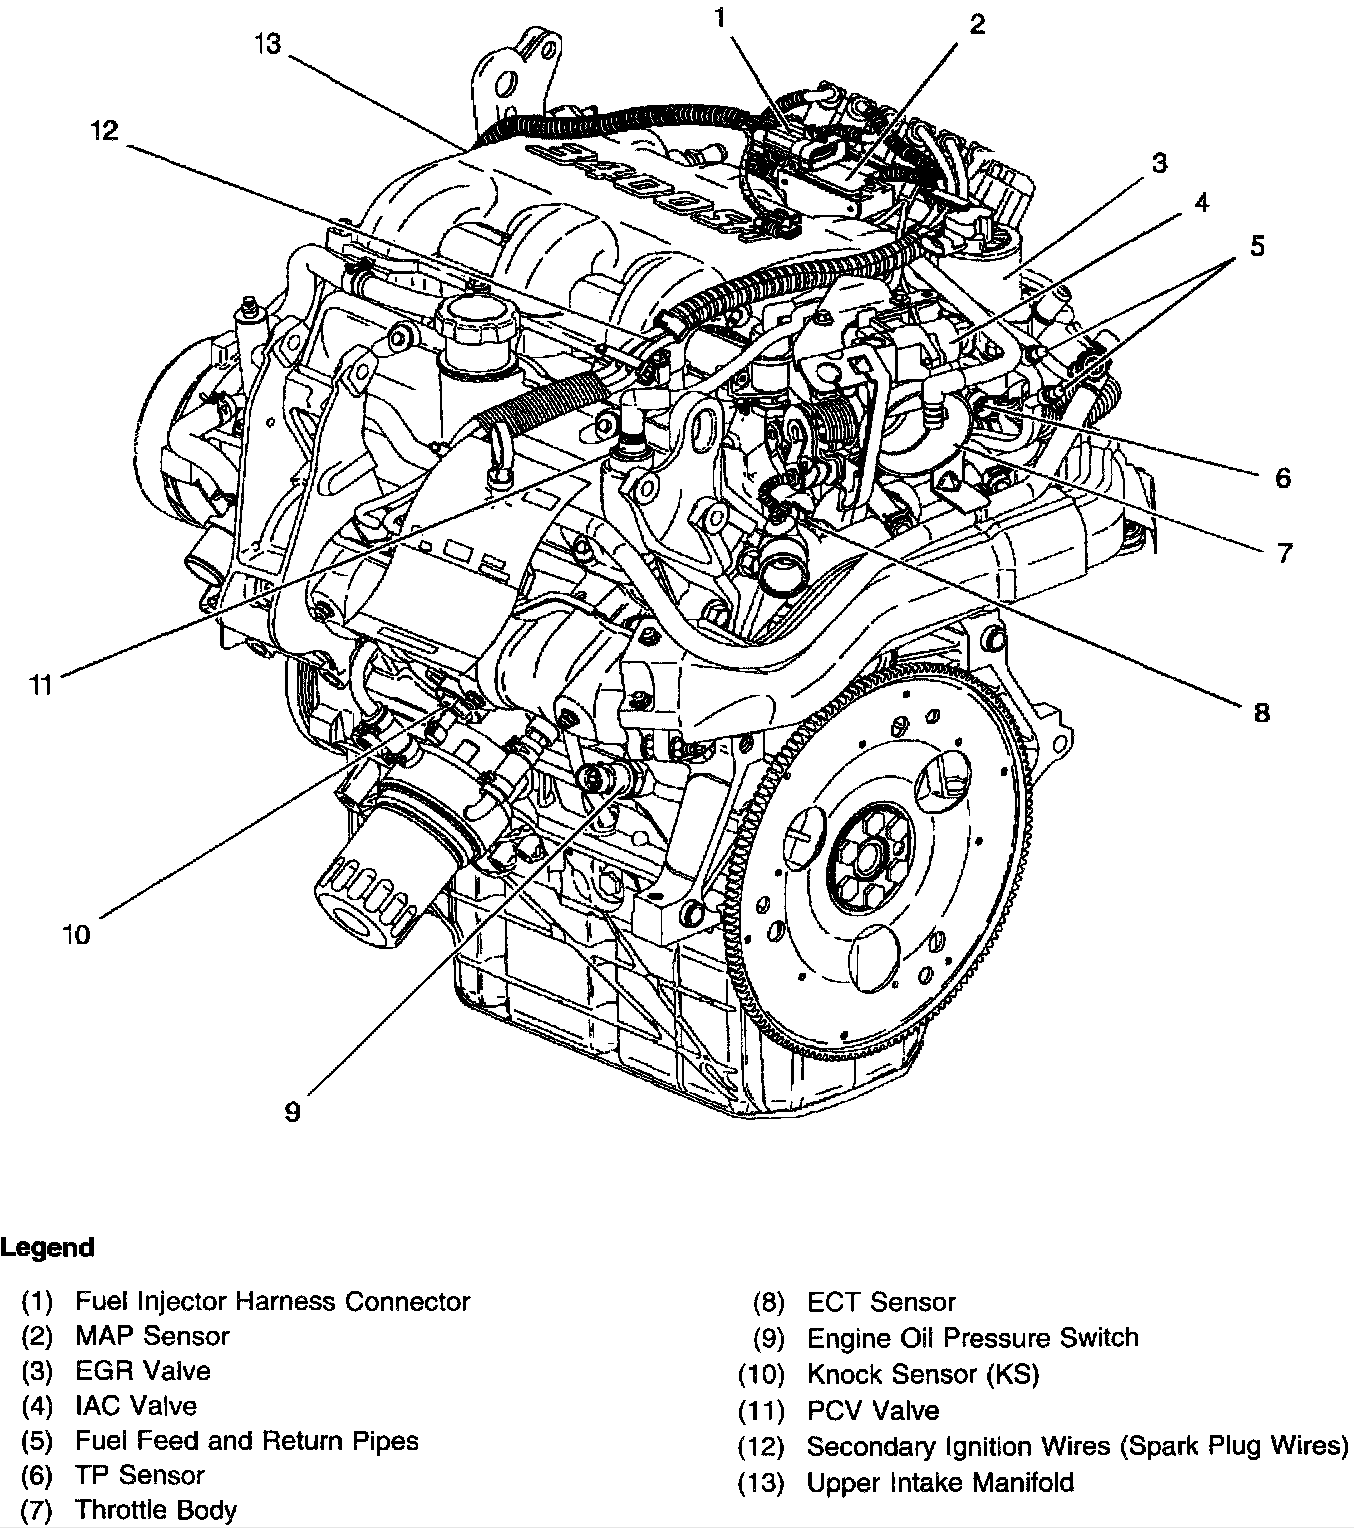 2003 Chevy Impala Parts Diagram 3400 Com